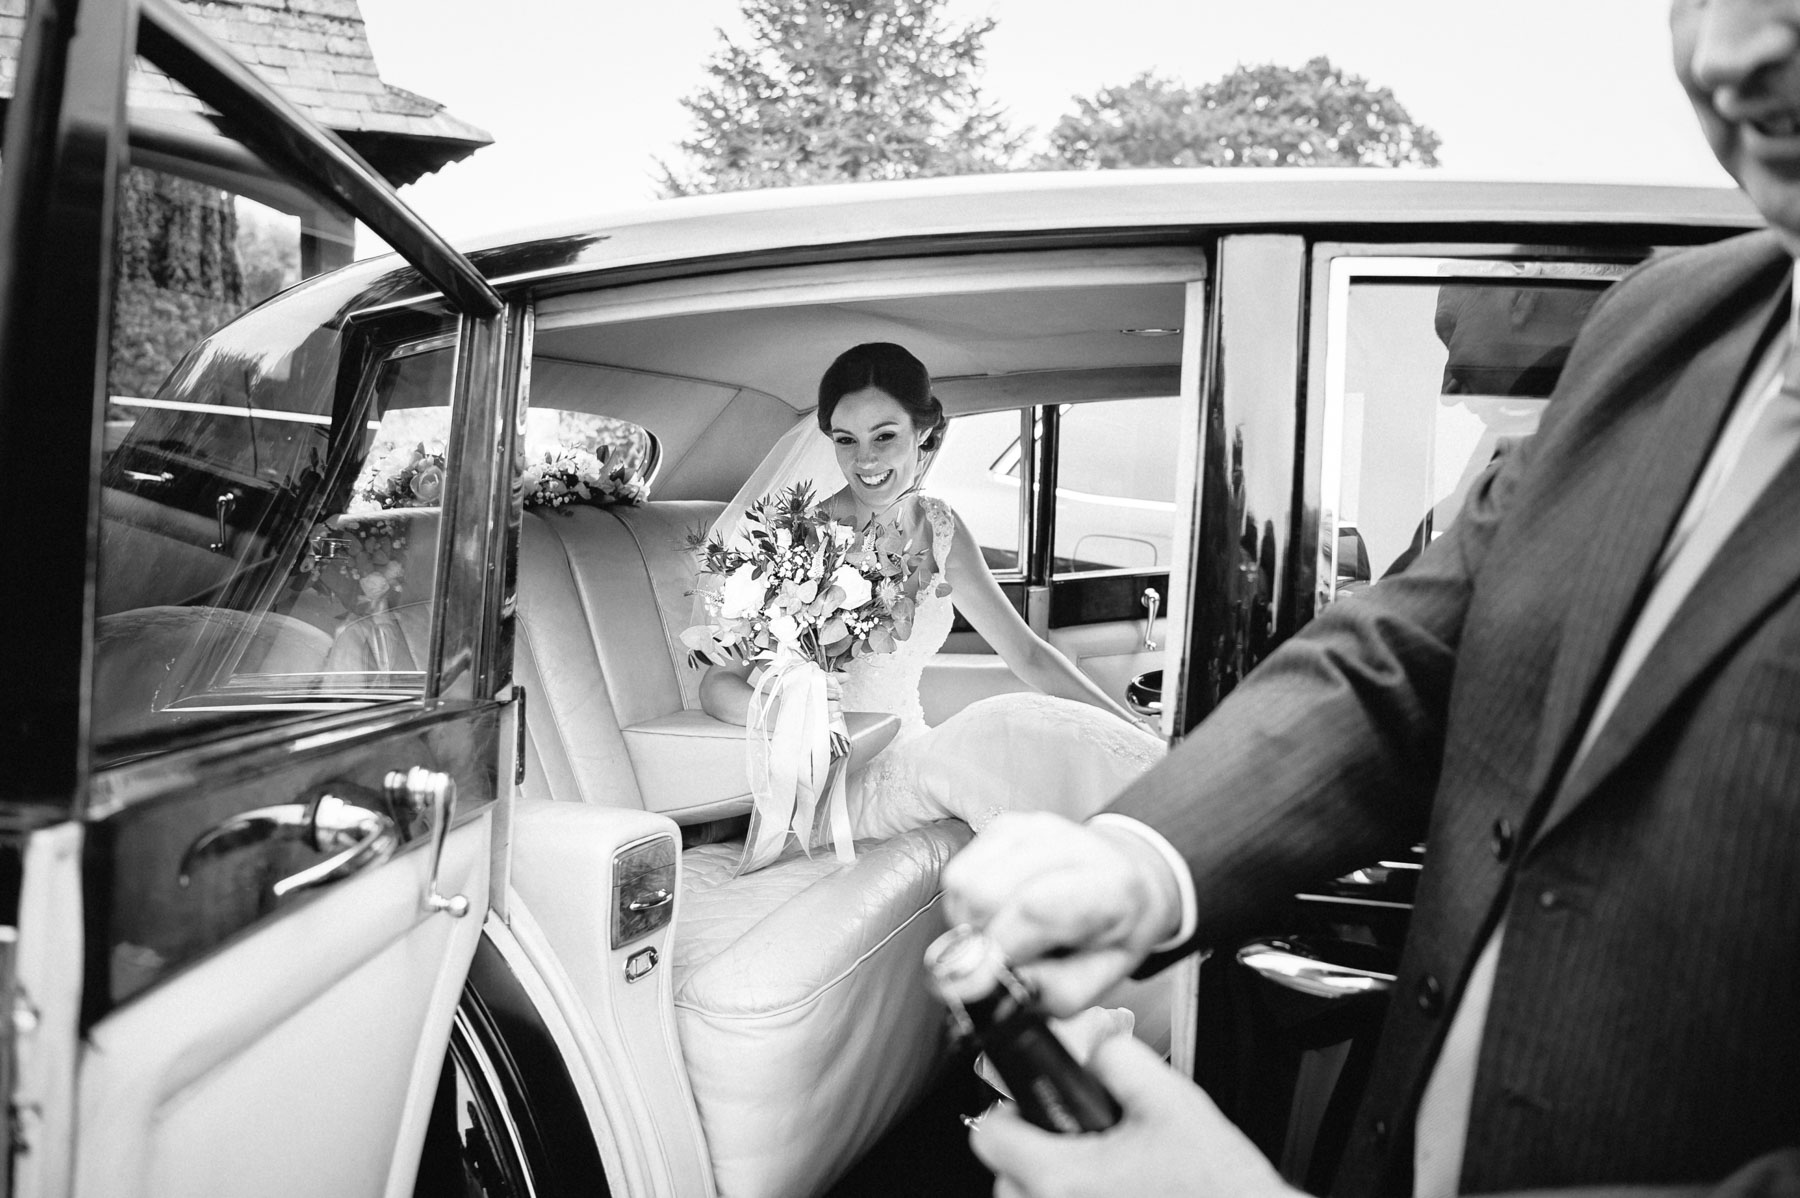 the wedding chauffeur cracks open the champagne